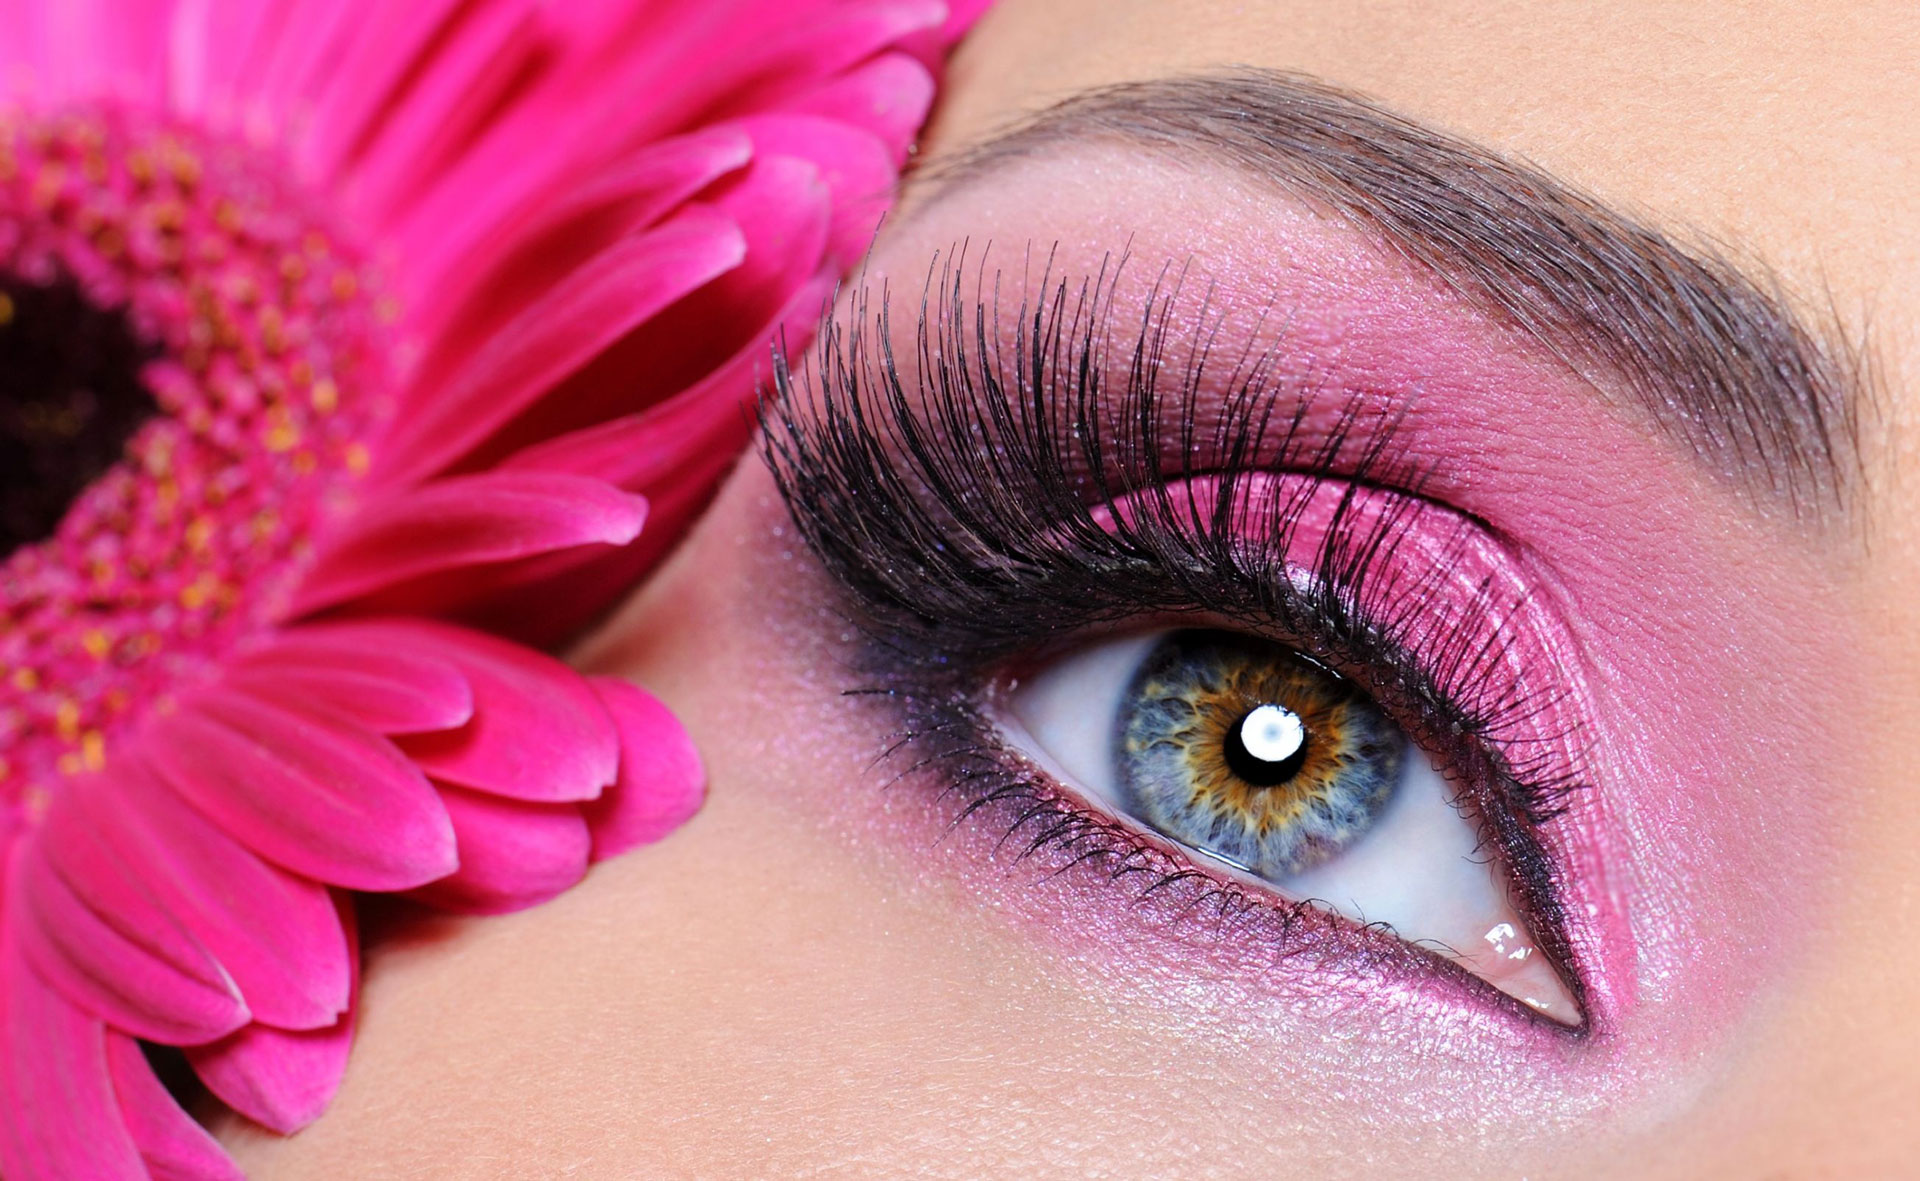 https://www.lashliftquebec.ca/wp-content/uploads/2019/09/pink-cosmetics-smooth.jpg